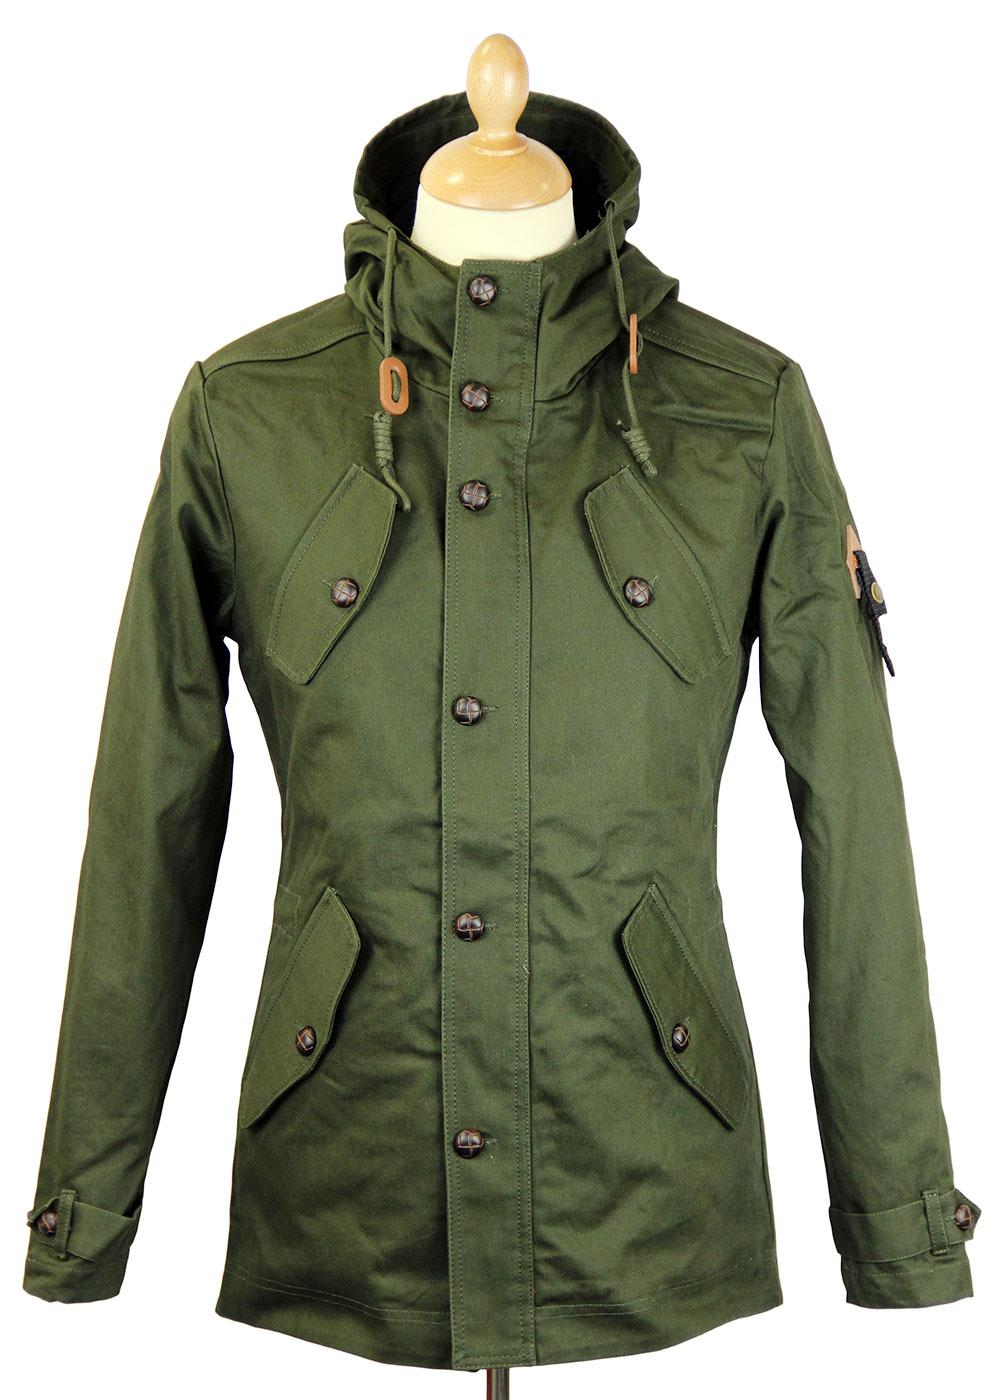 Burton FLY53 Retro Indie Mod Fishtail Parka (O)